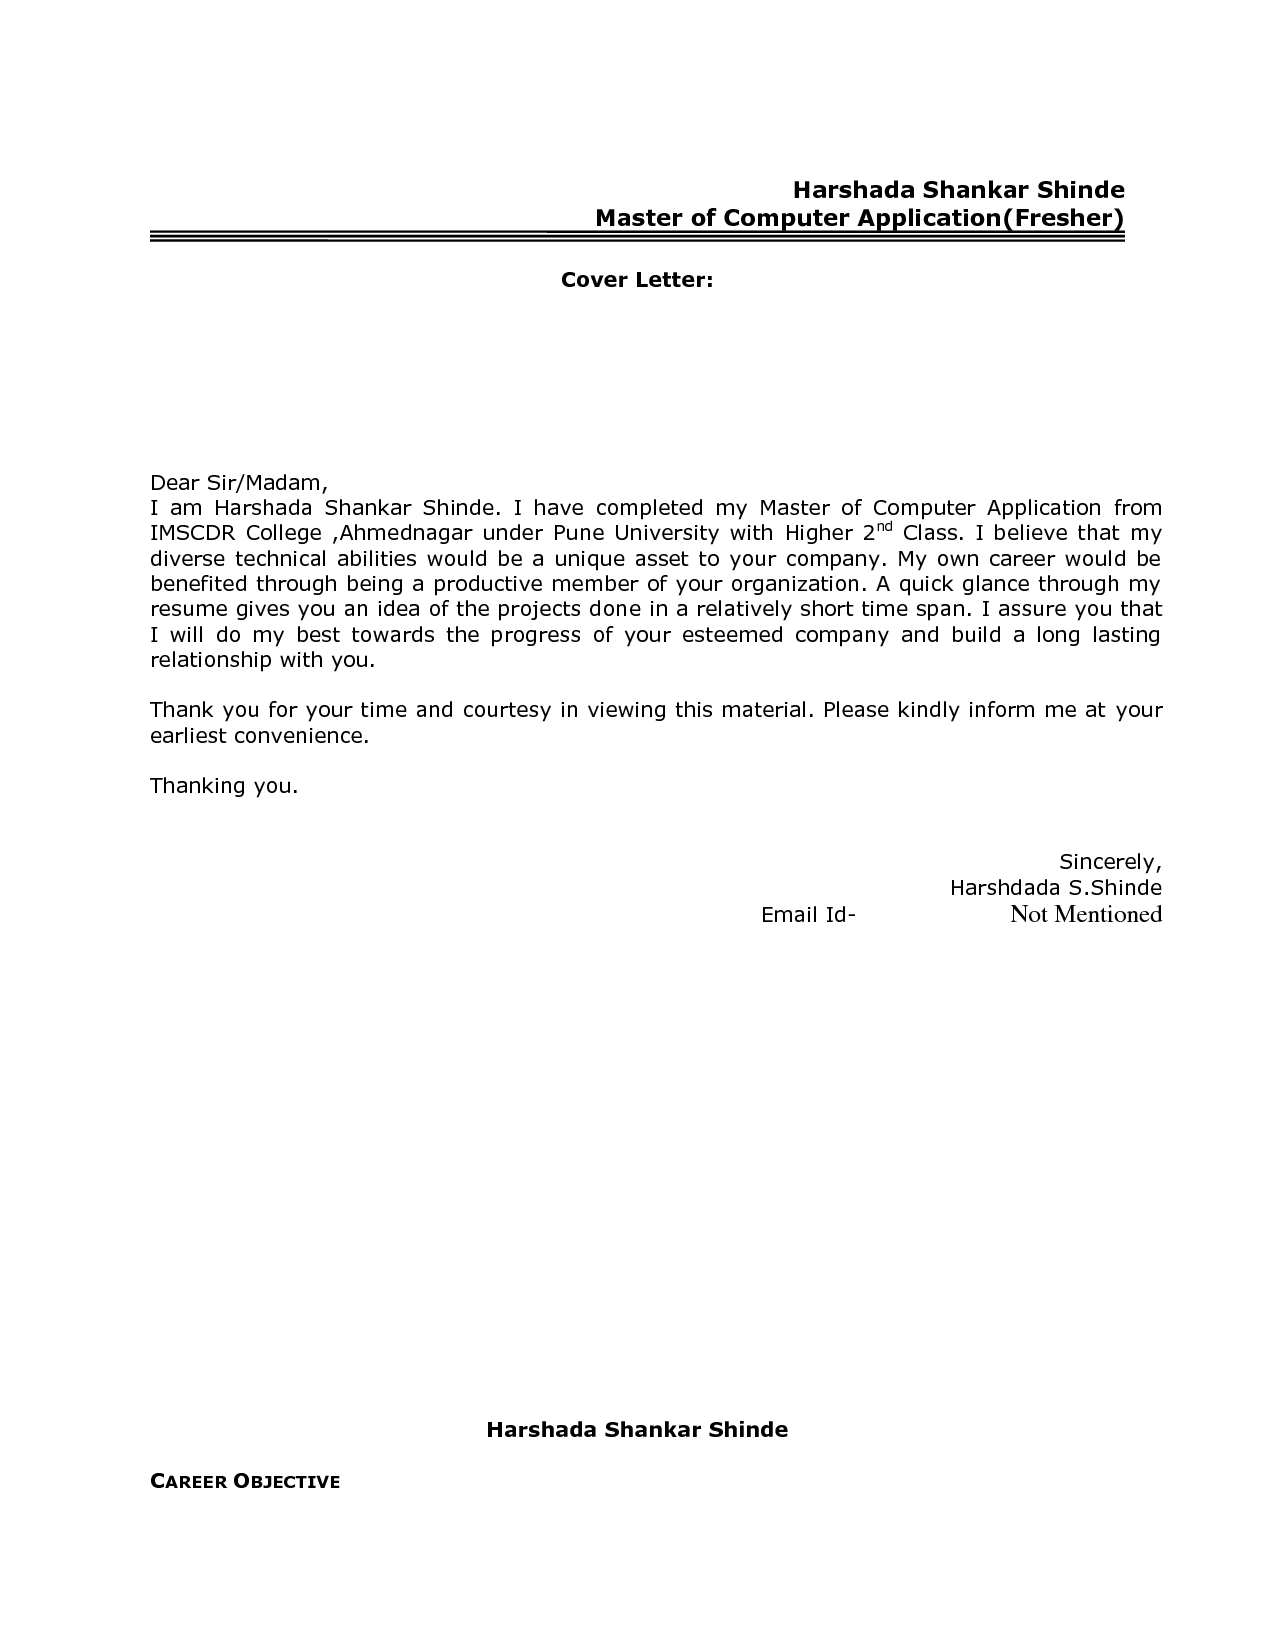 Best Resume Cover Letter Format For Freshers Govt JobCover ...